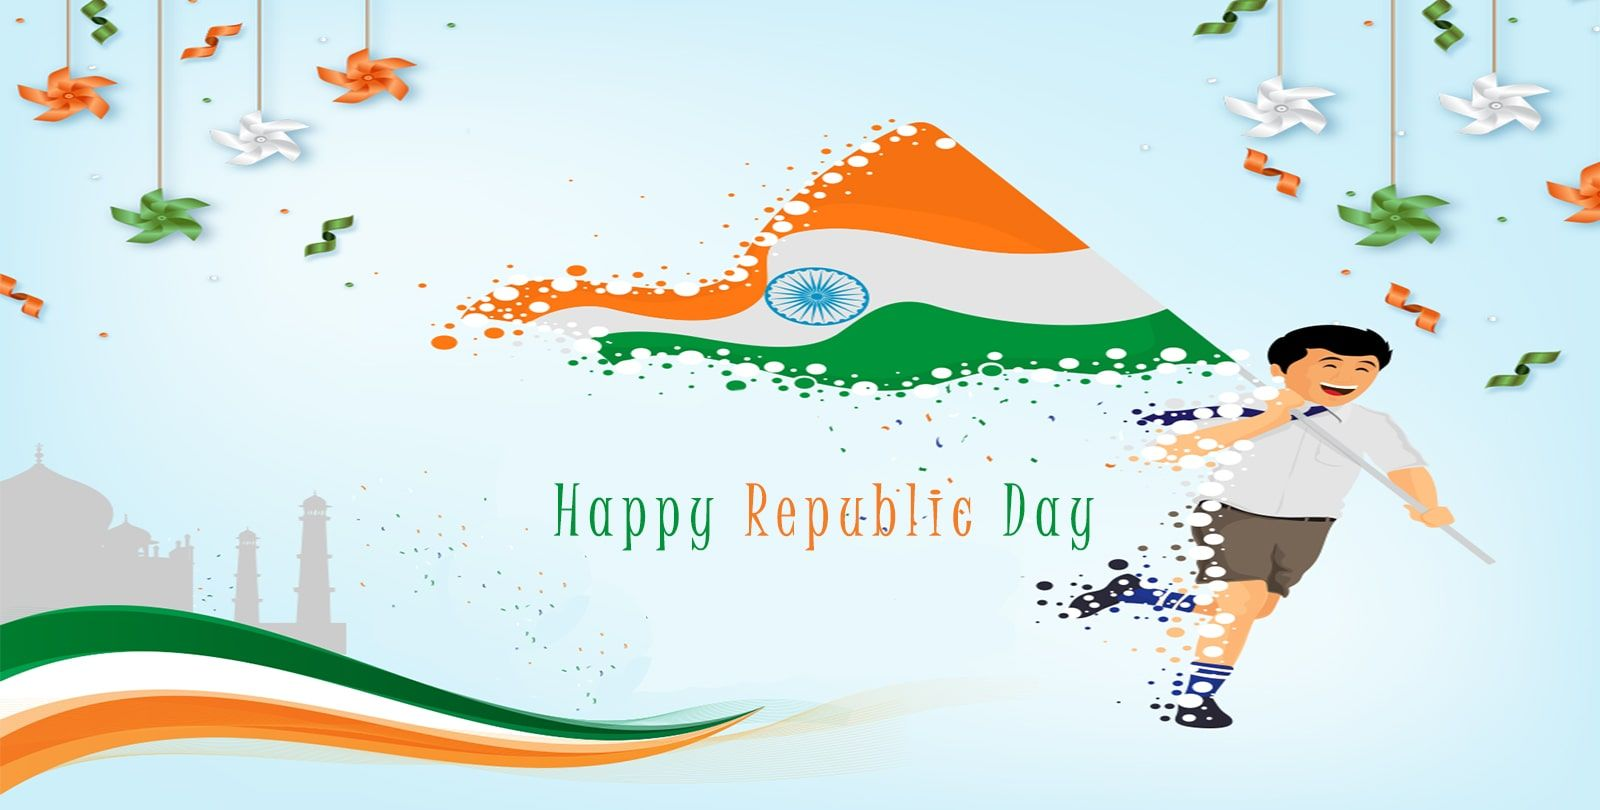 Happy Republic Day 2021 Wishes Messages Quotes Facebook Posts To Share With Friends Family In 2021 Happy Republic Day Republic Day 2021 Wishes Happy republic day 2021 best wishes